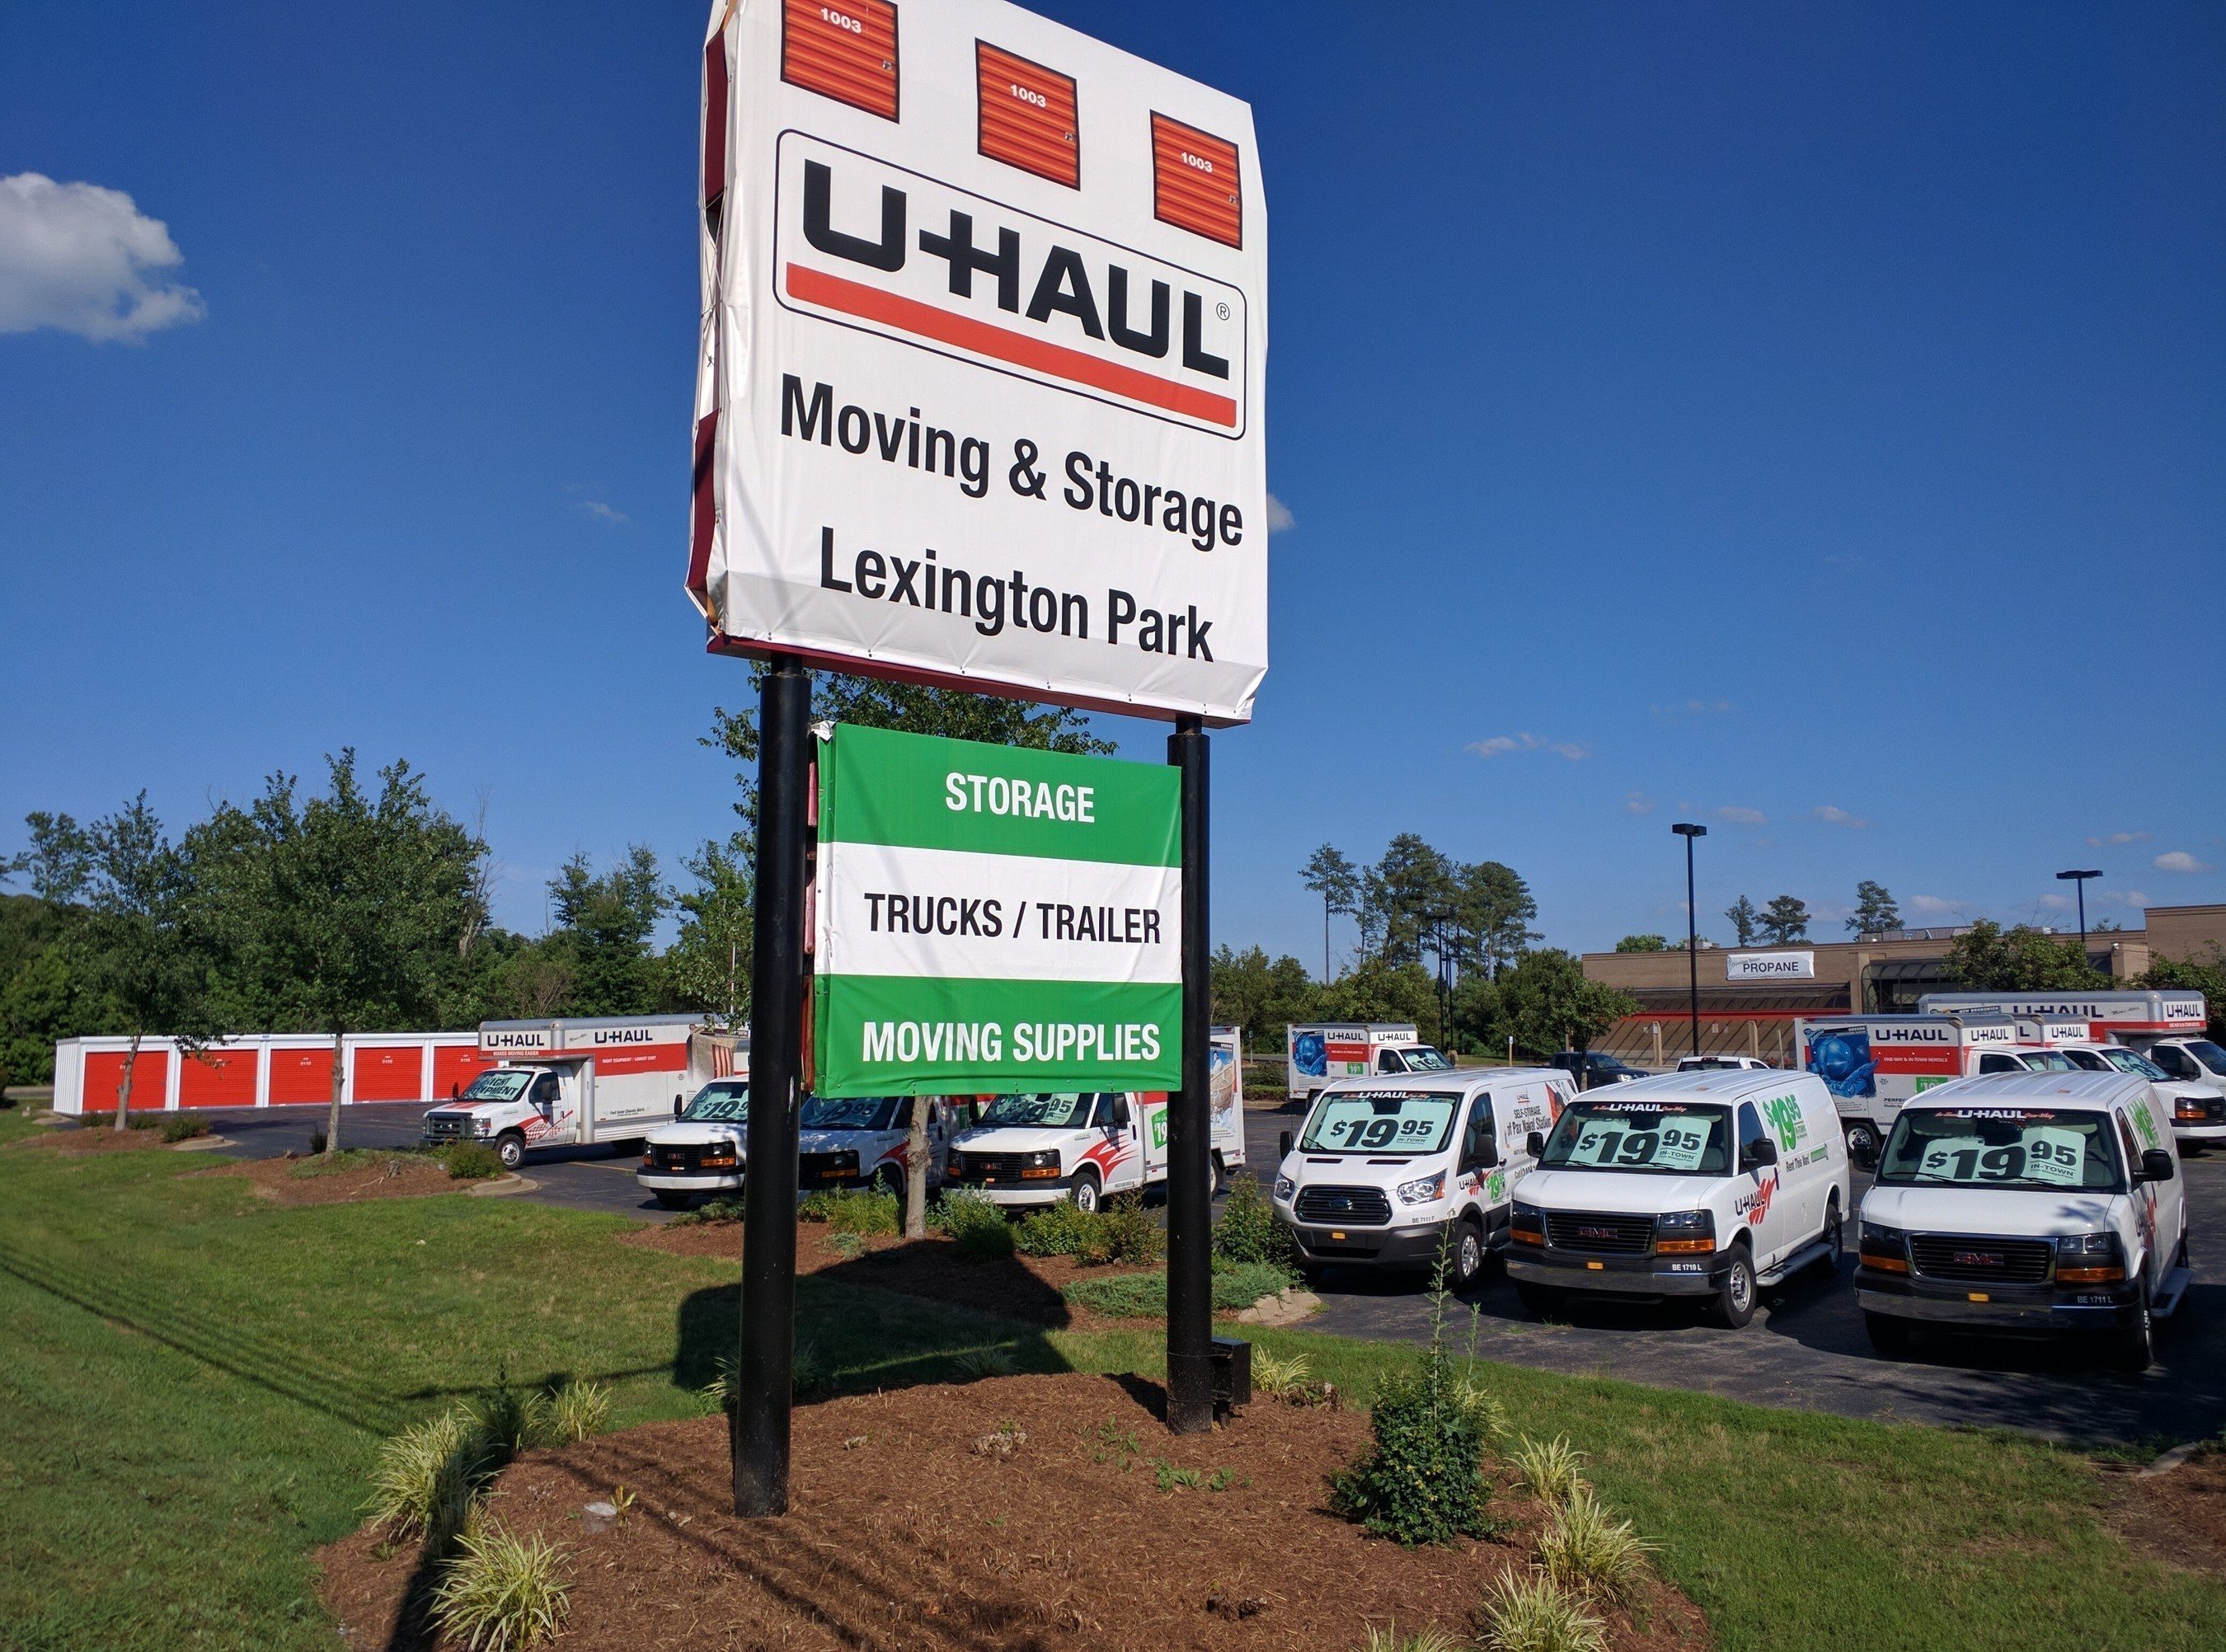 U-Haul is incorporating its adaptive reuse practices to convert a former McKay's Supermarket into Lexington Park's first full-service U-Haul store for the do-it-yourself mover.